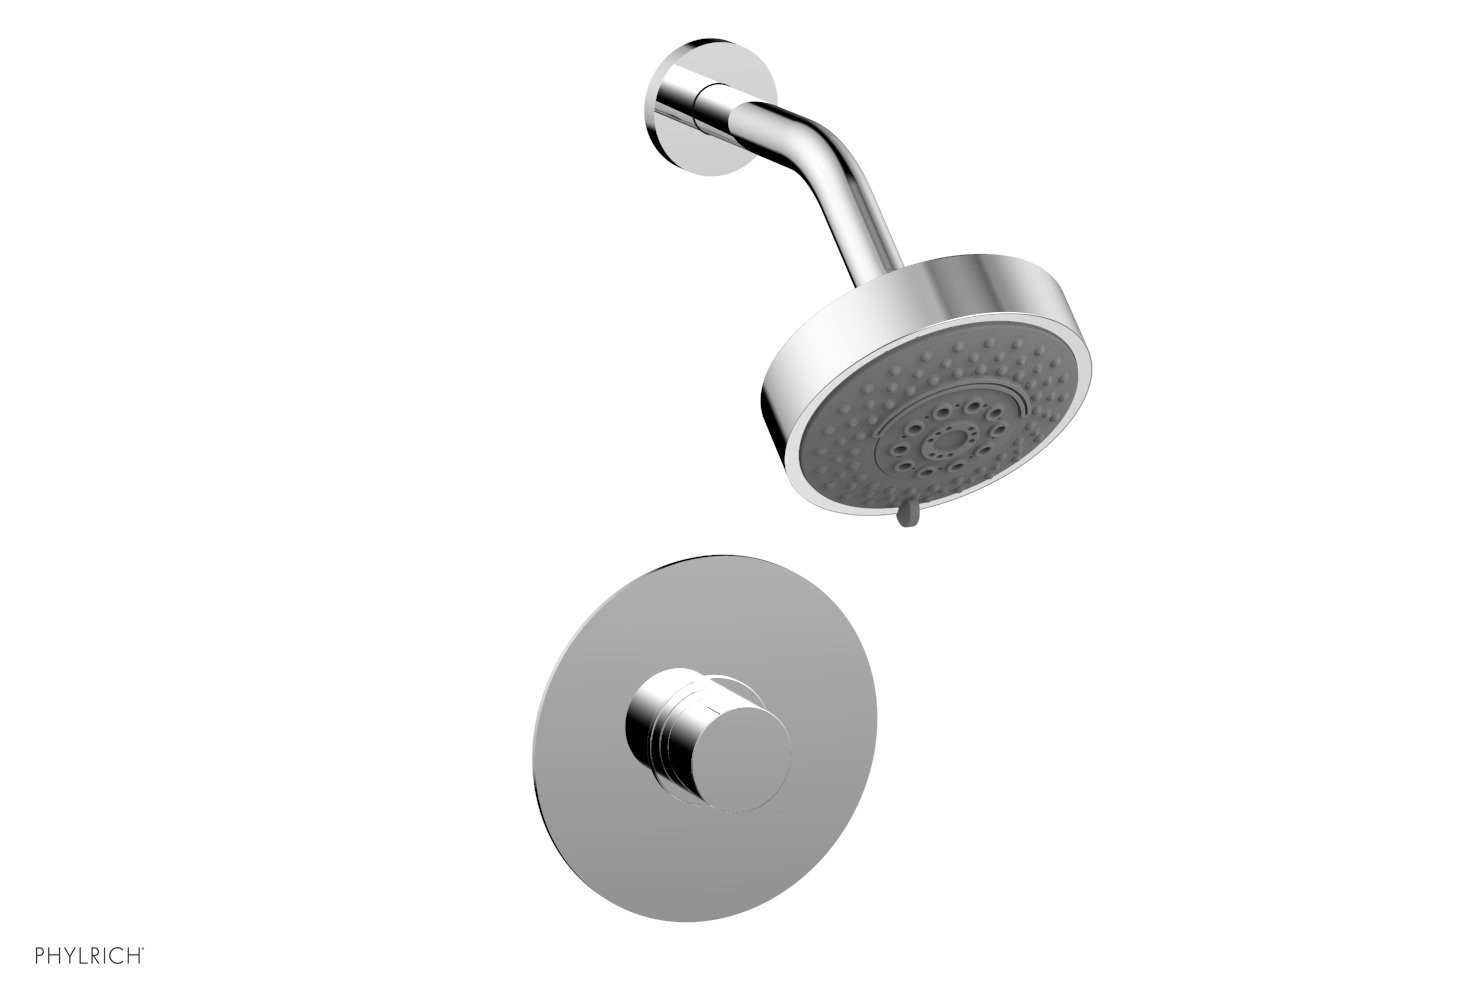 PHYLRICH 230-22 BASIC II WALL MOUNT PRESSURE BALANCE SHOWER SET WITH SMOOTH HANDLE